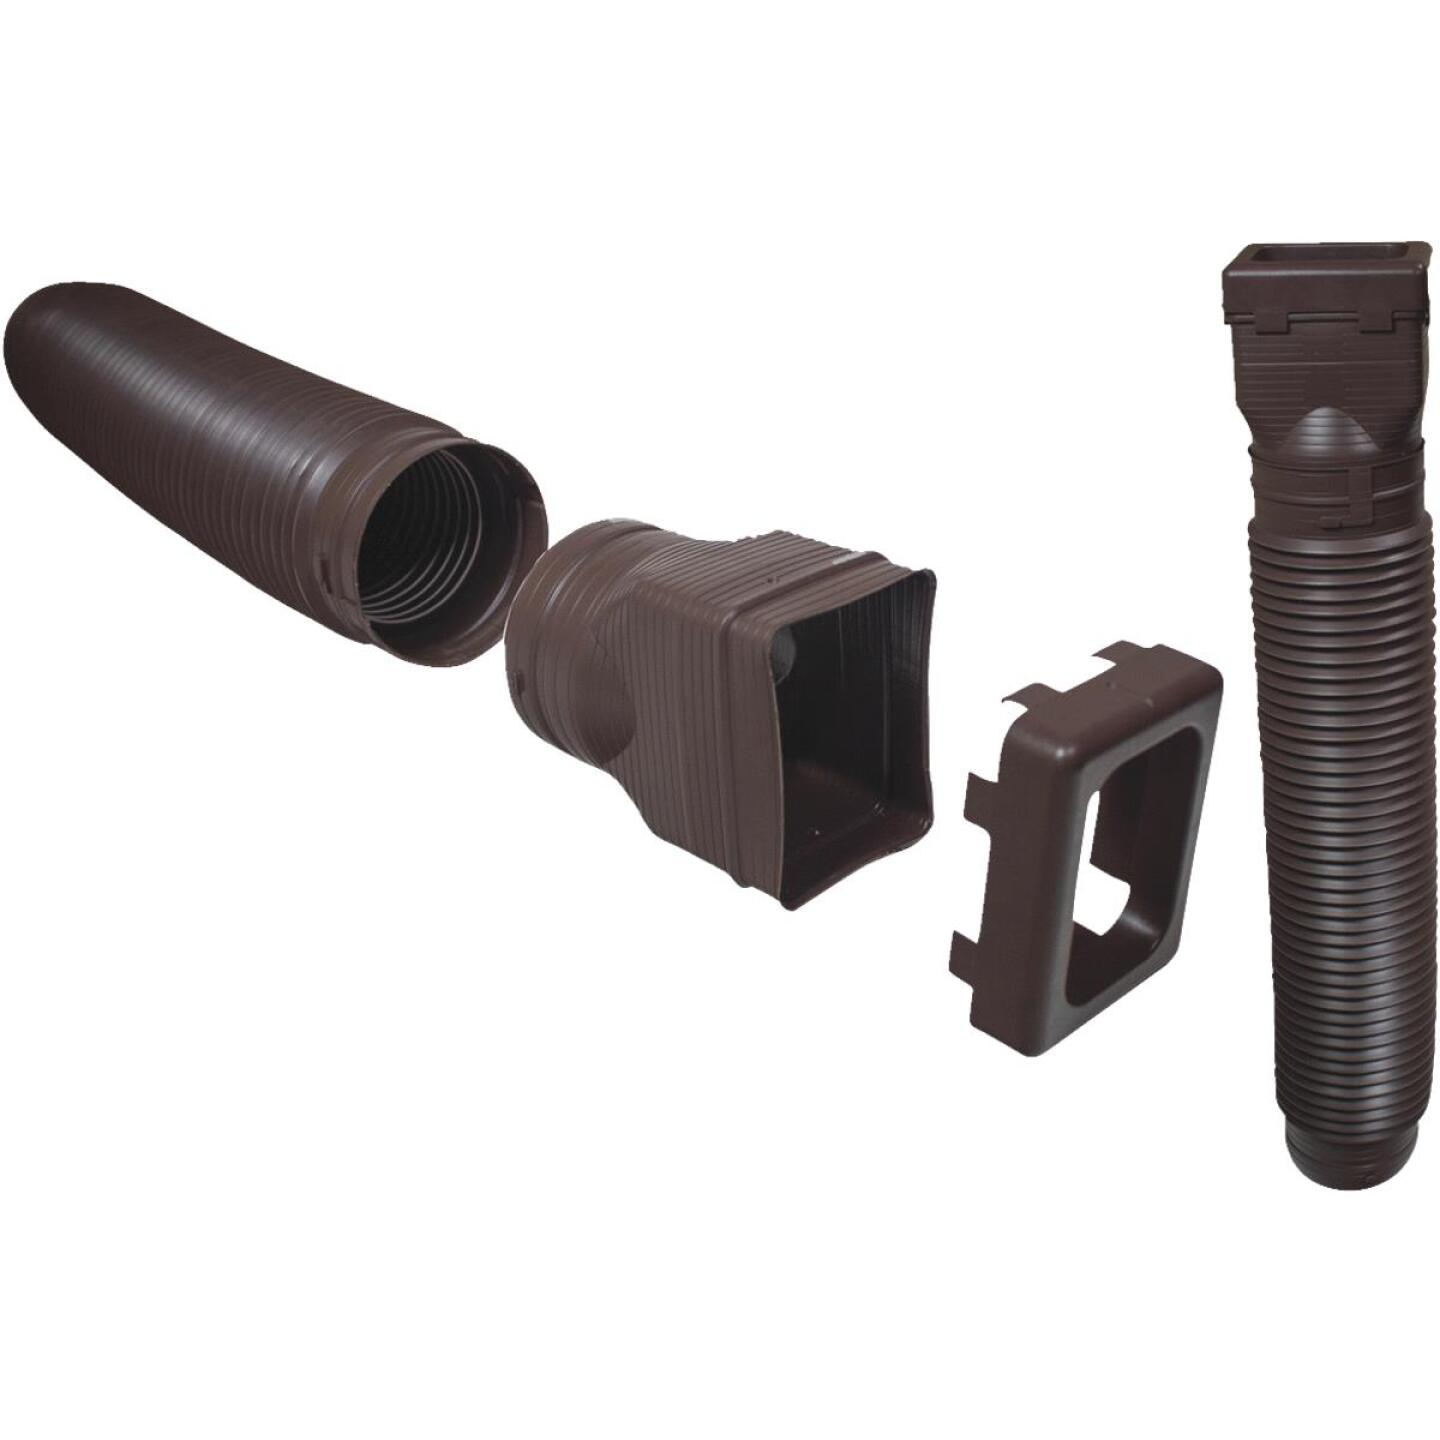 Spectra Metals Ground Spout 22 In. to 48 In. Stone K-Style Polypropylene Downspout Extender Image 1